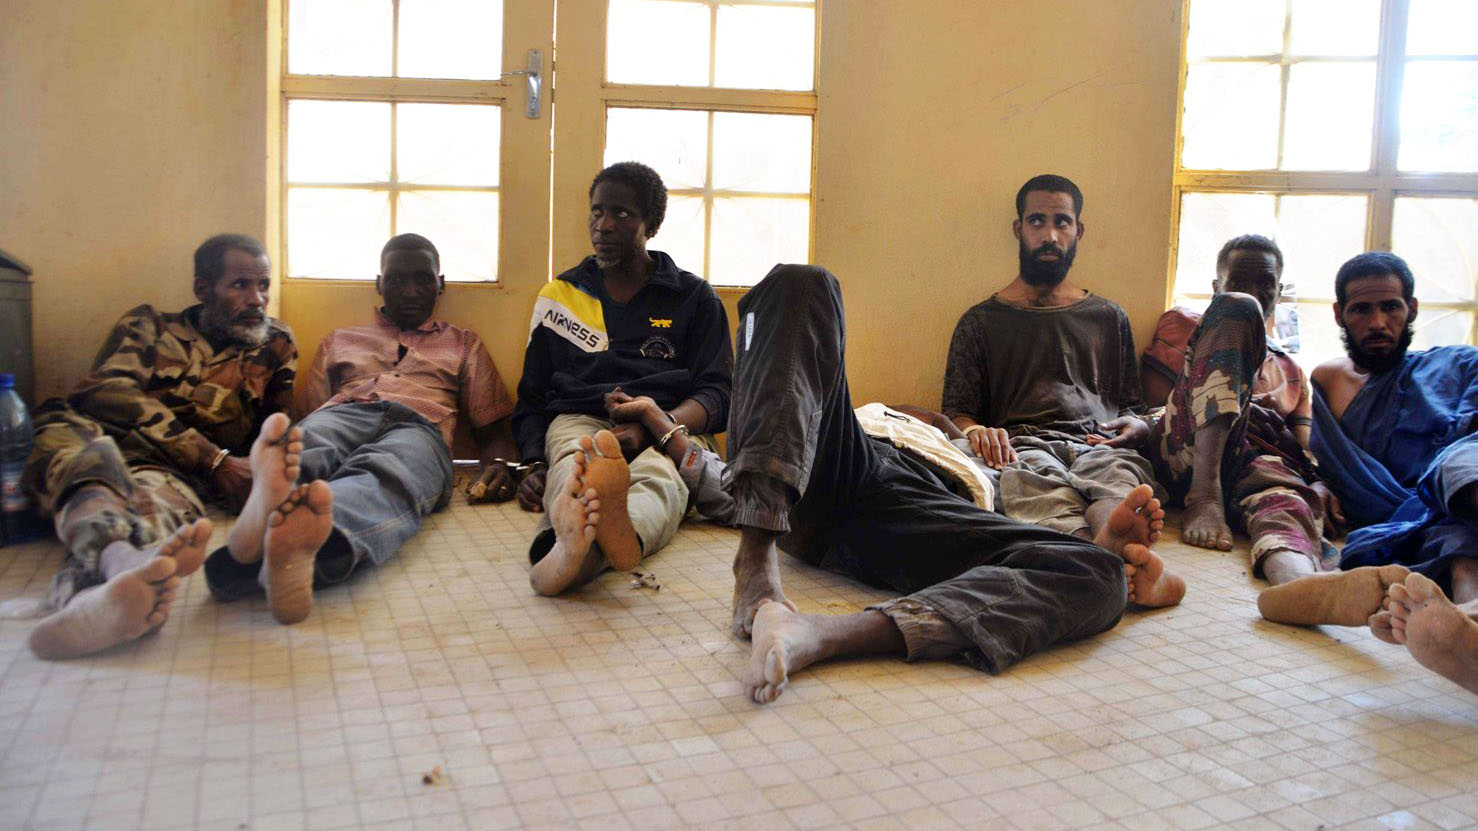 At the gendarme in Gao, detainees captured in Timbuktu region and suspected of assisting the armed groups, wait for further transport to Bamako.The men had to wait at the Gao gendarme for several days before being transferred to the central prison in Bama